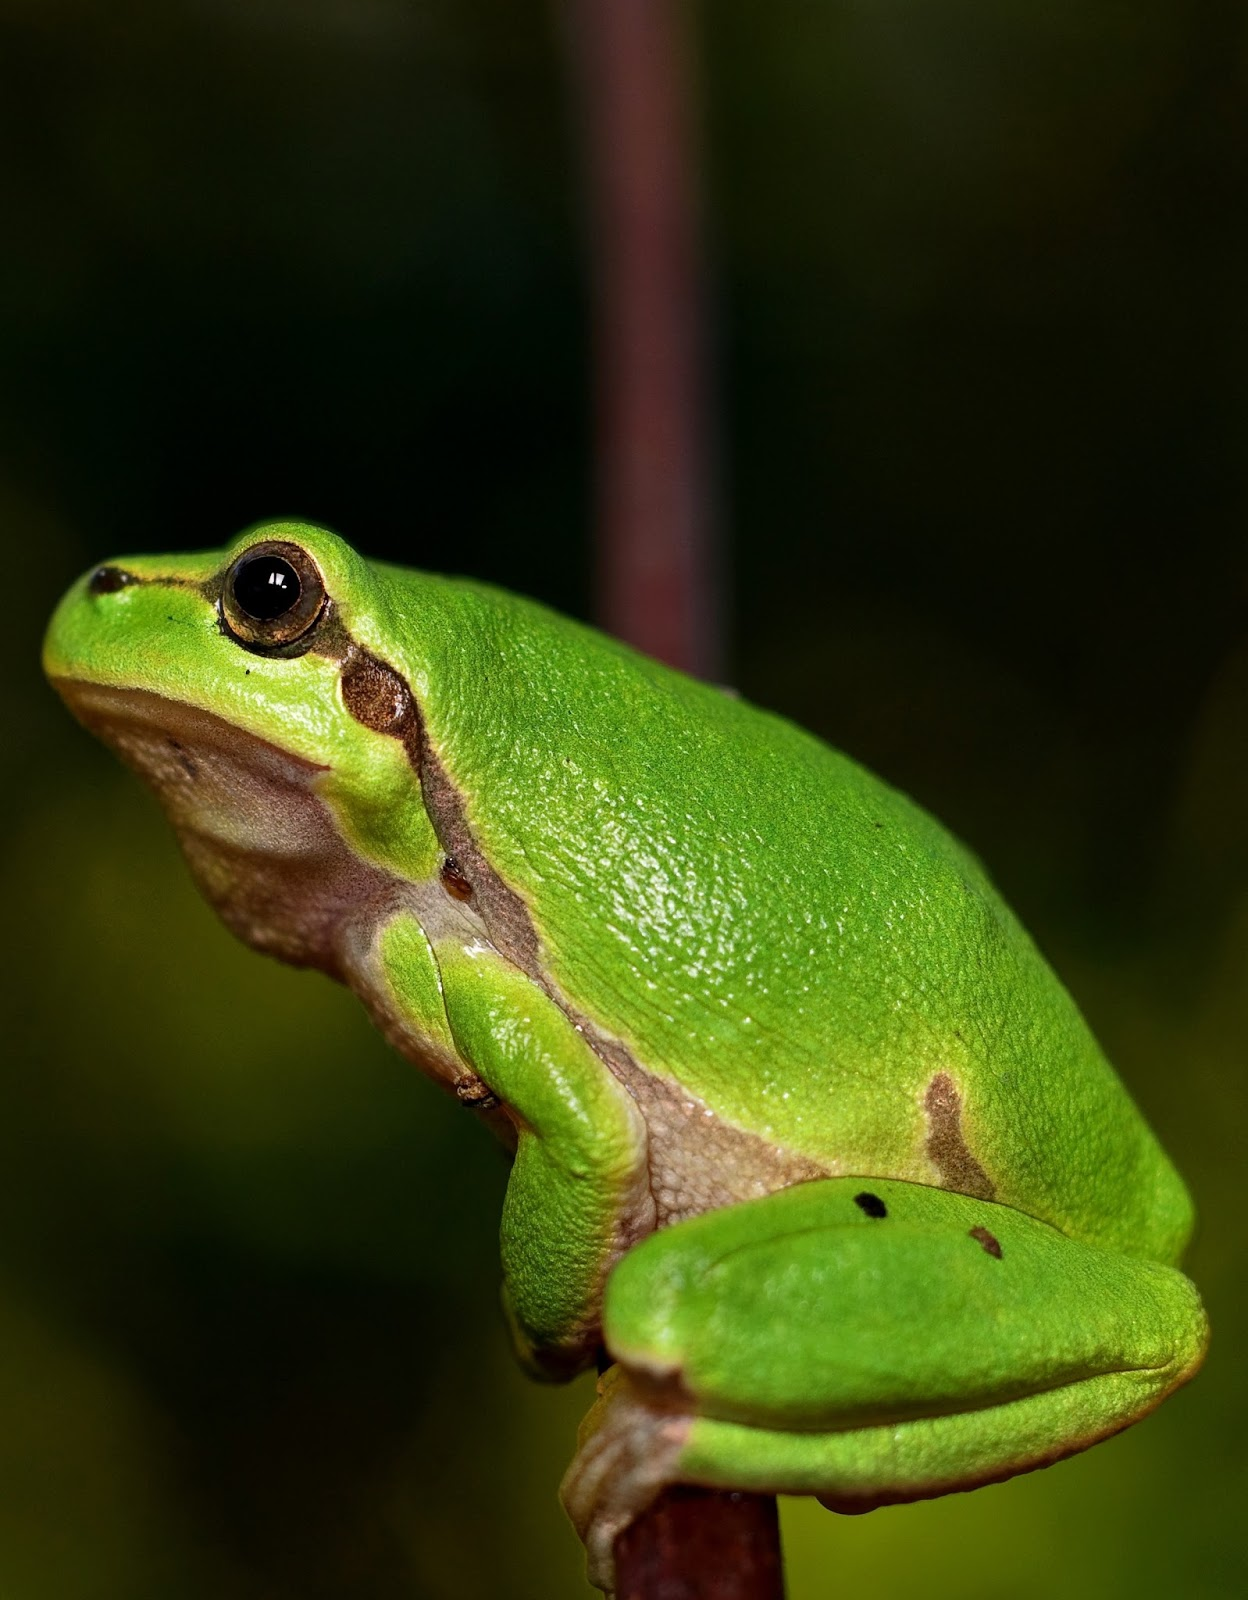 Picture-mediterranean tree frog.